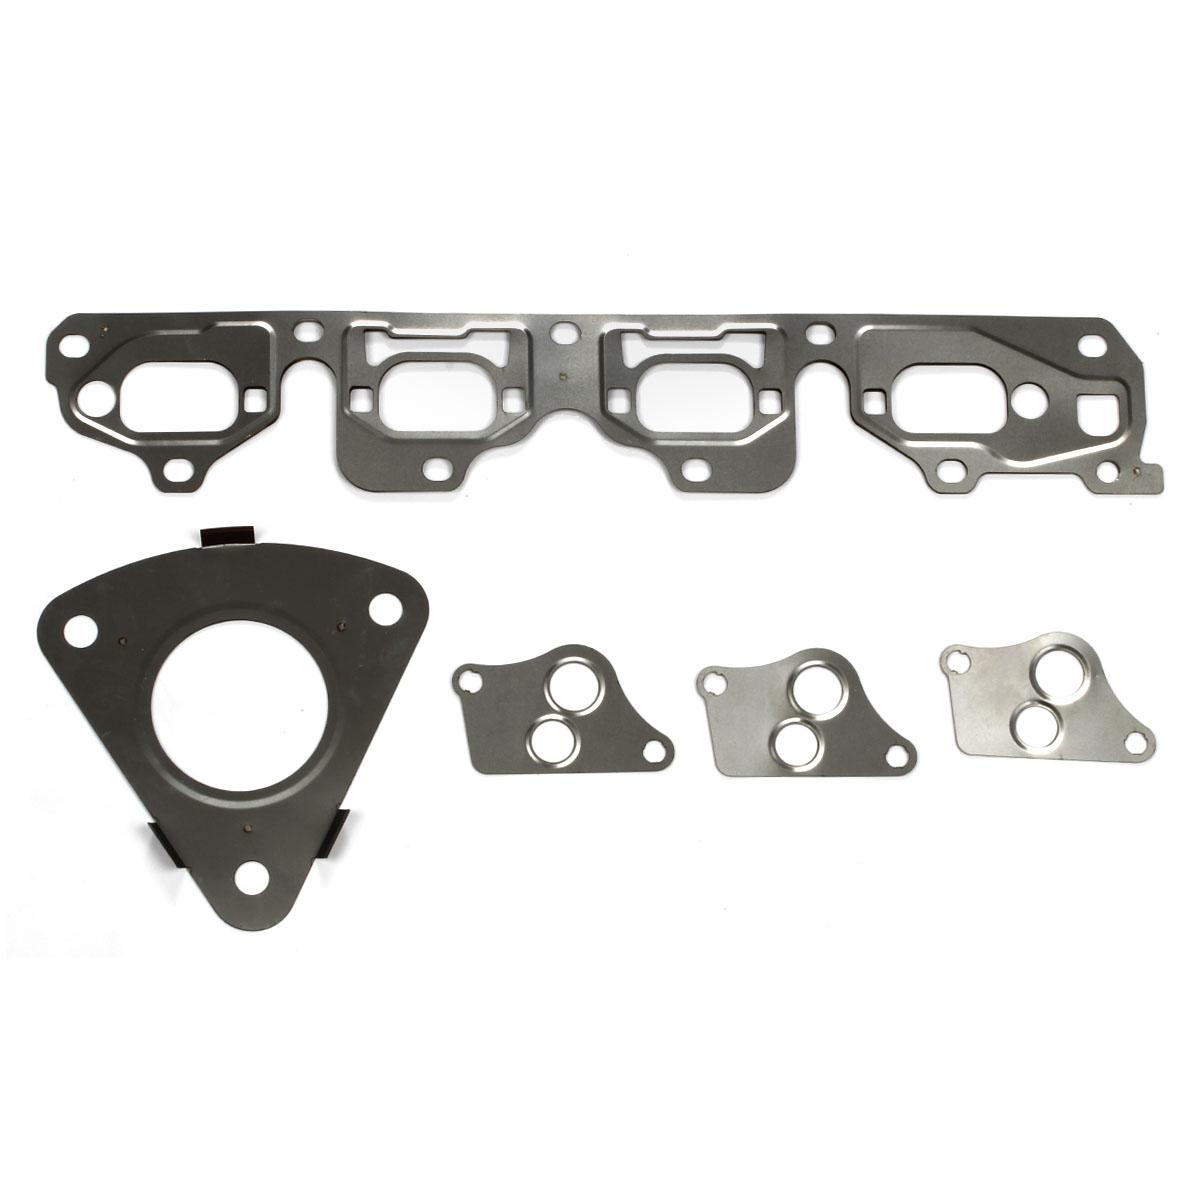 1998 Land Rover Range Rover Head Gasket: [2004 Saturn Vue Head Gasket Replacement]